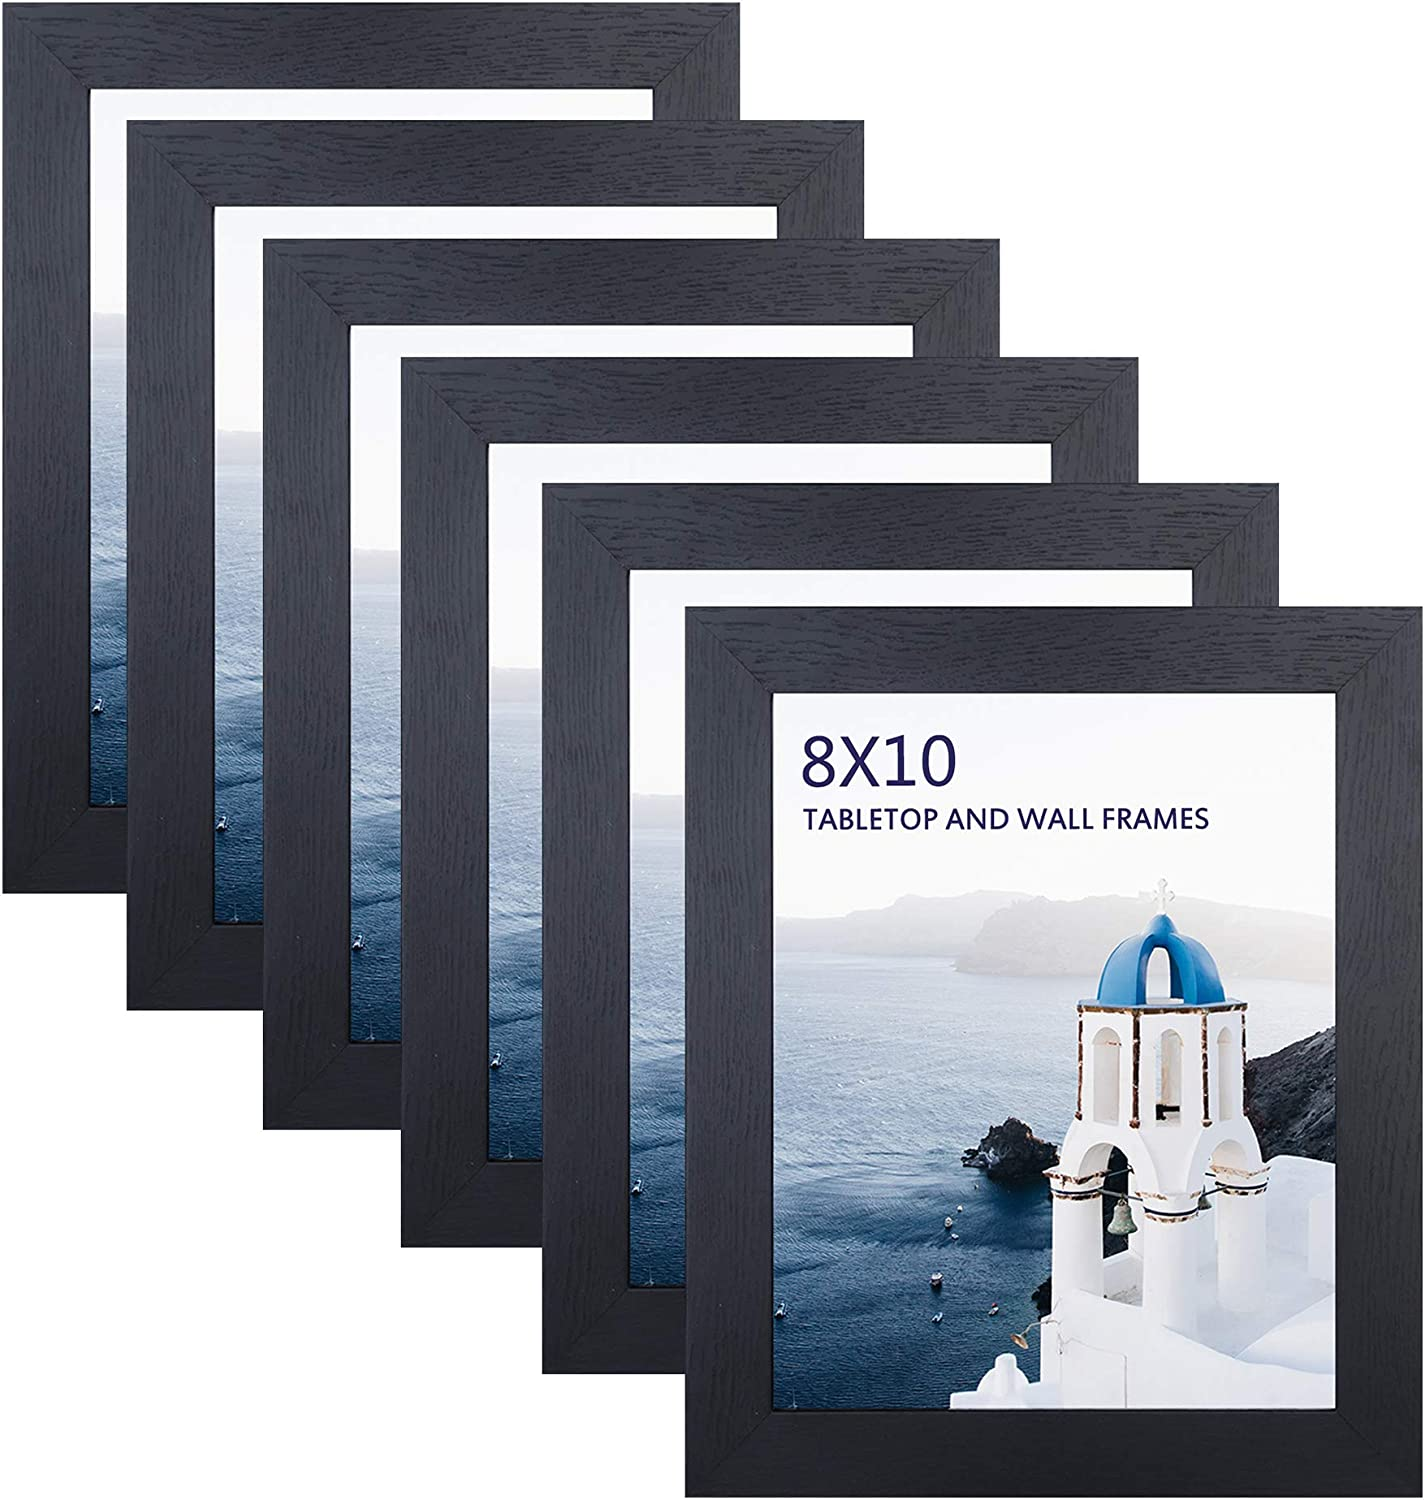 FRAME YI 8x10 Picture Frames - Wall Table Top Display - Photo Frames for School Office Home Decor (Black(A-Landscape), 6)